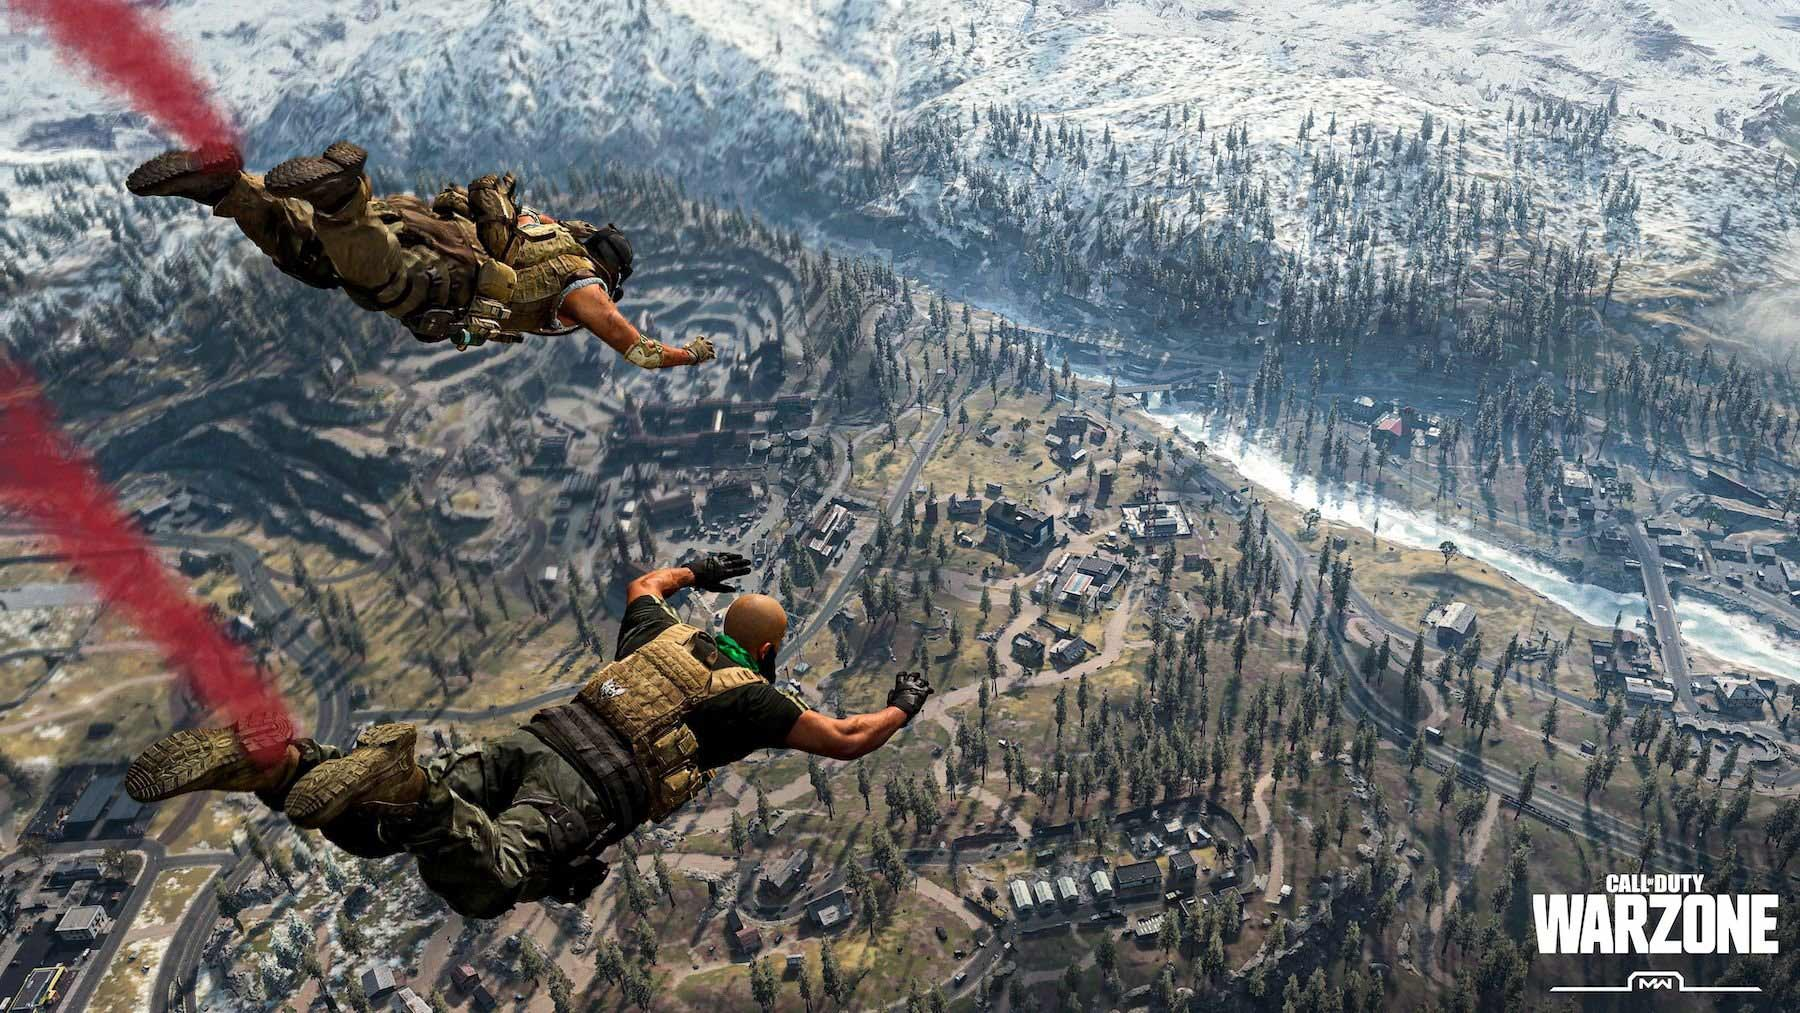 Characters from Call of Duty Warzone dropping from the sky